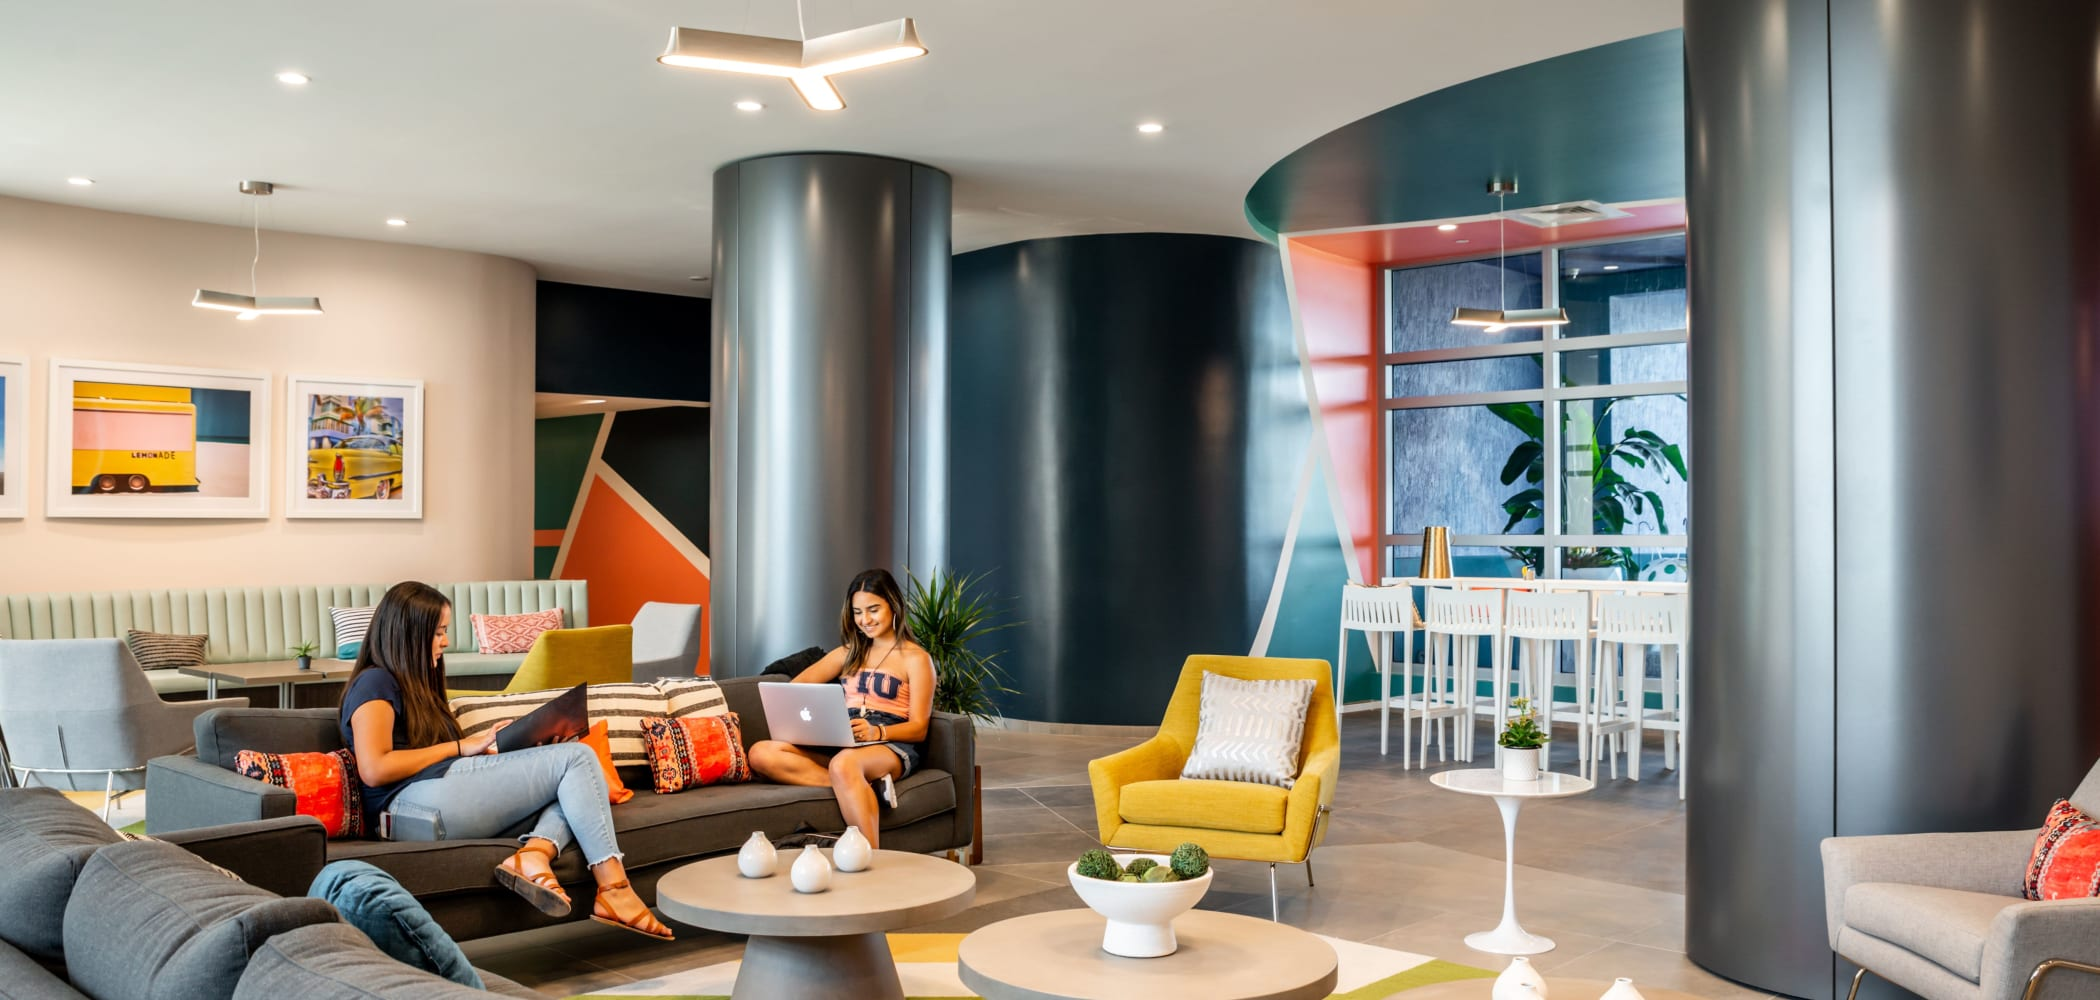 Clubroom with a comfy couch at IDENTITY Miami in Miami, Florida